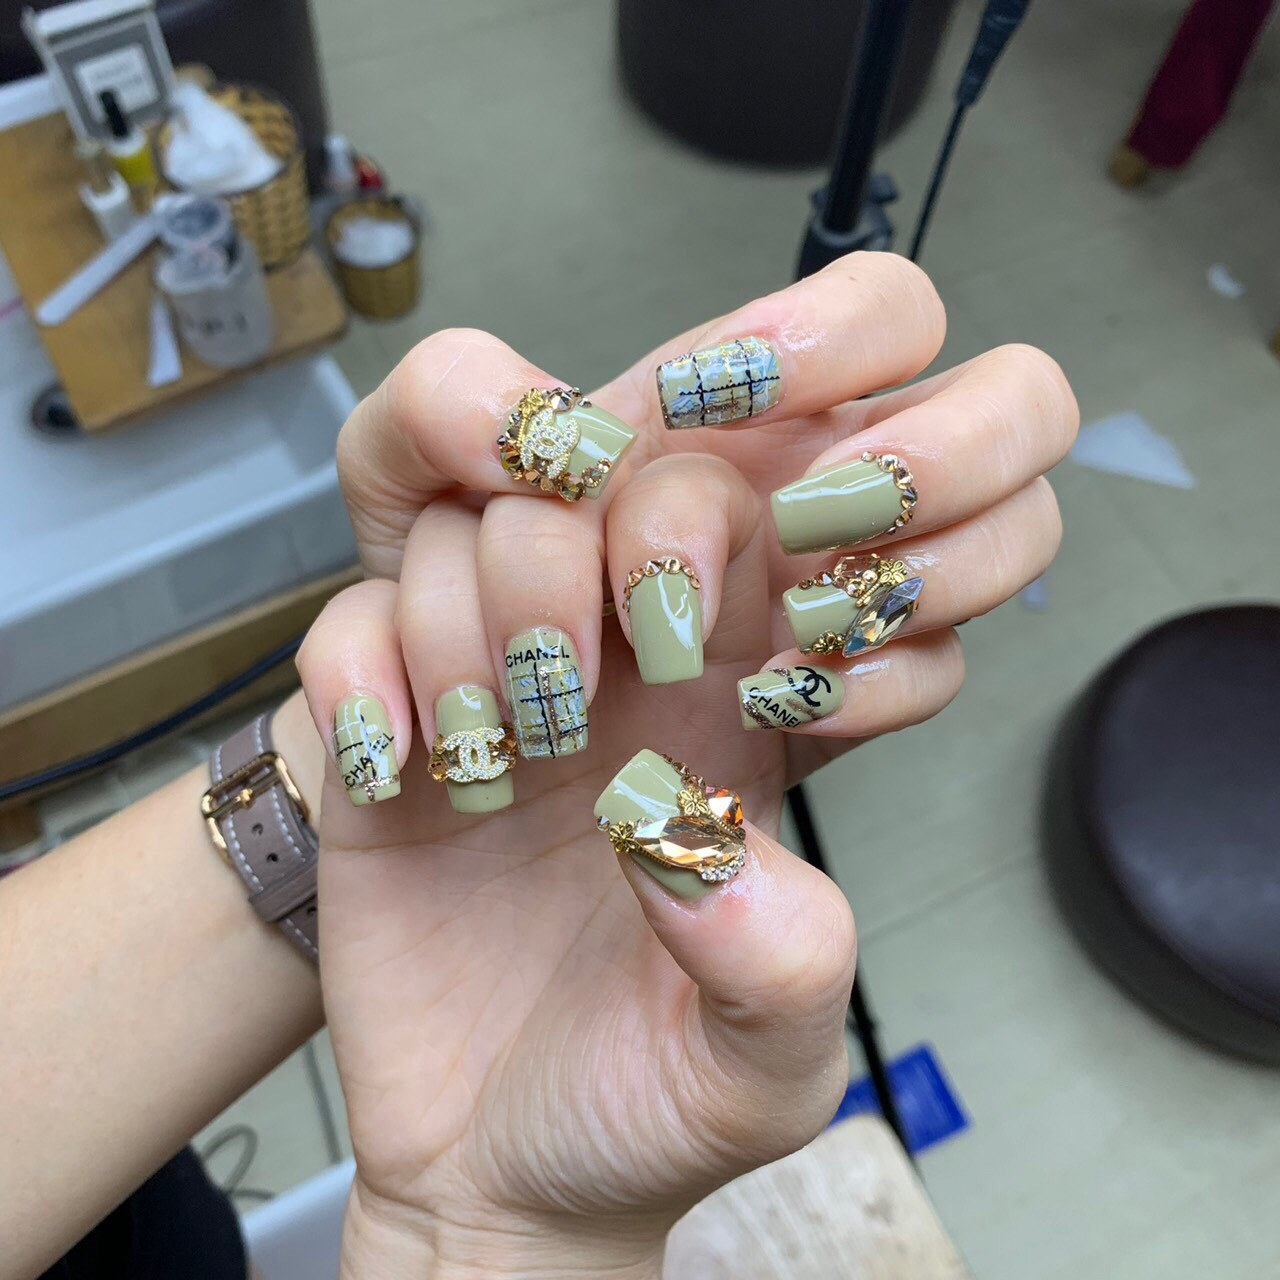 Her Beauty Nail